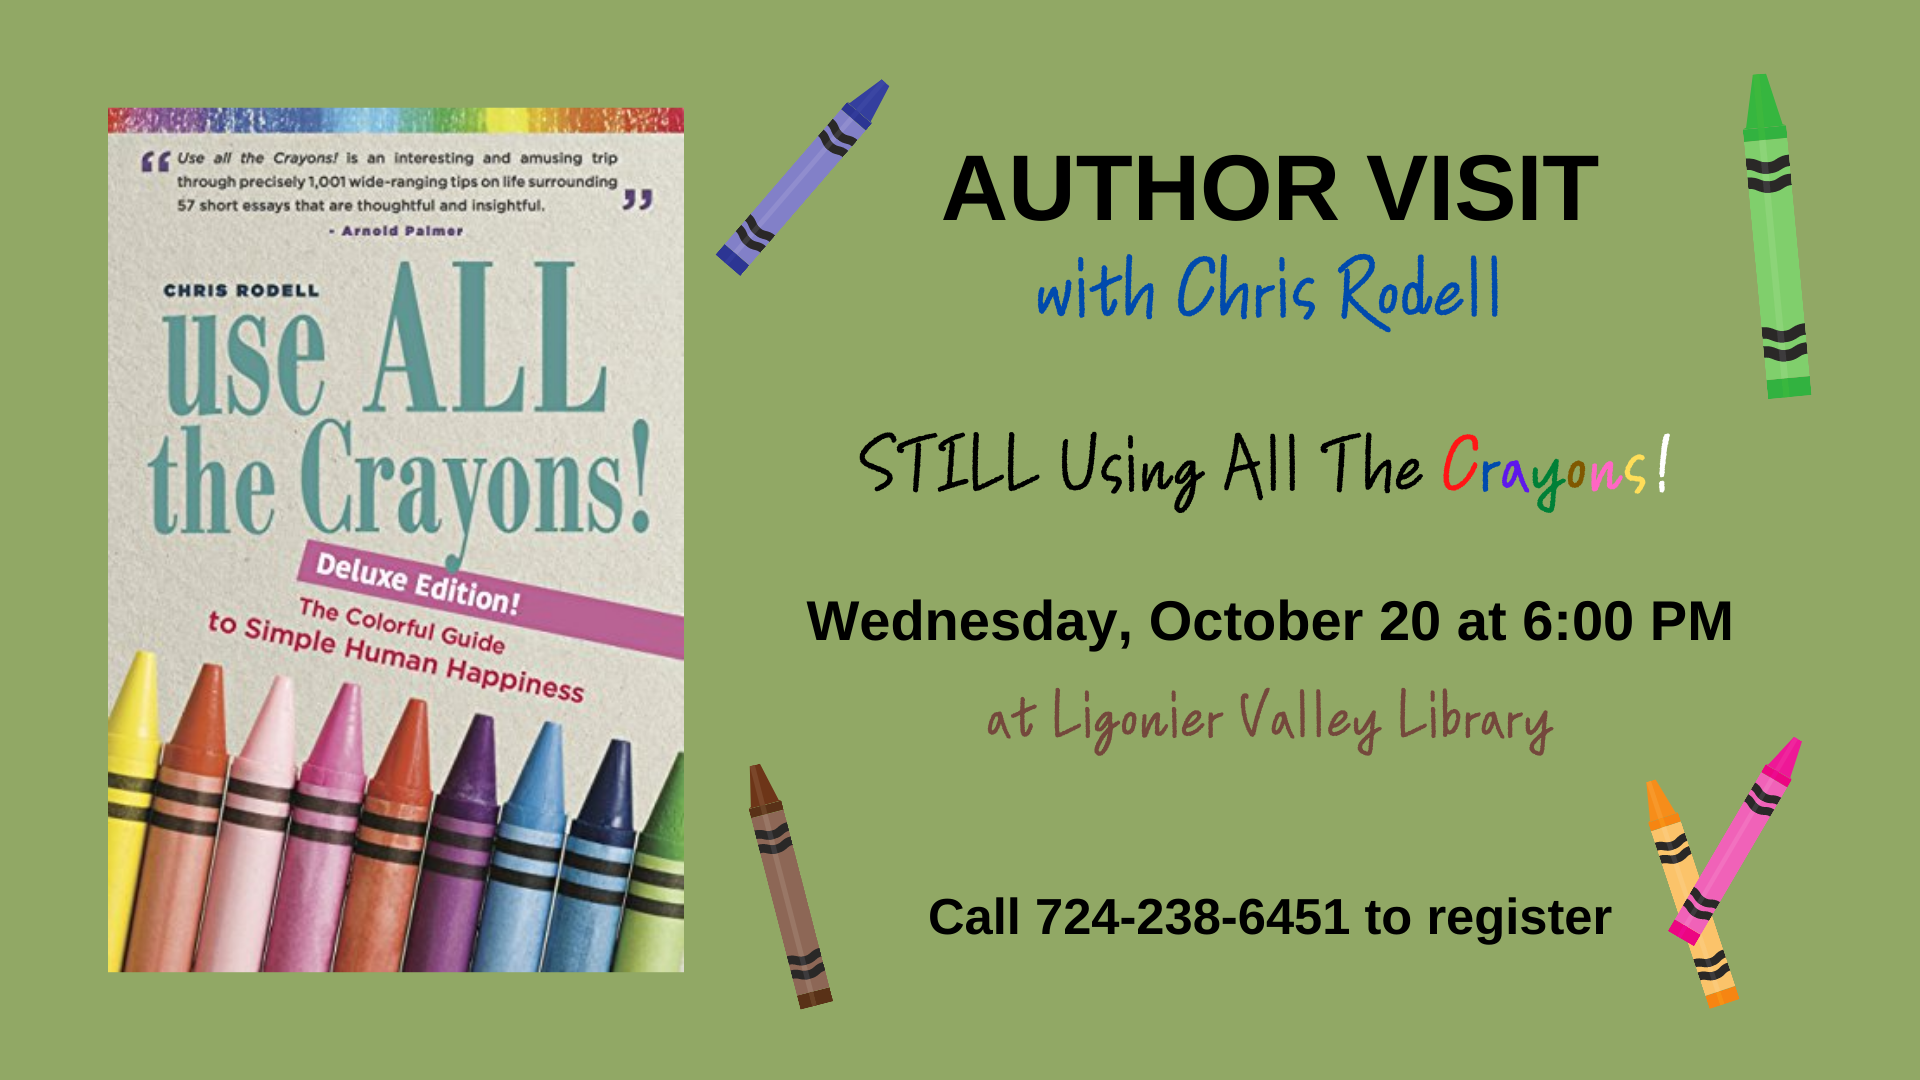 Author Visit with Chris Rodell